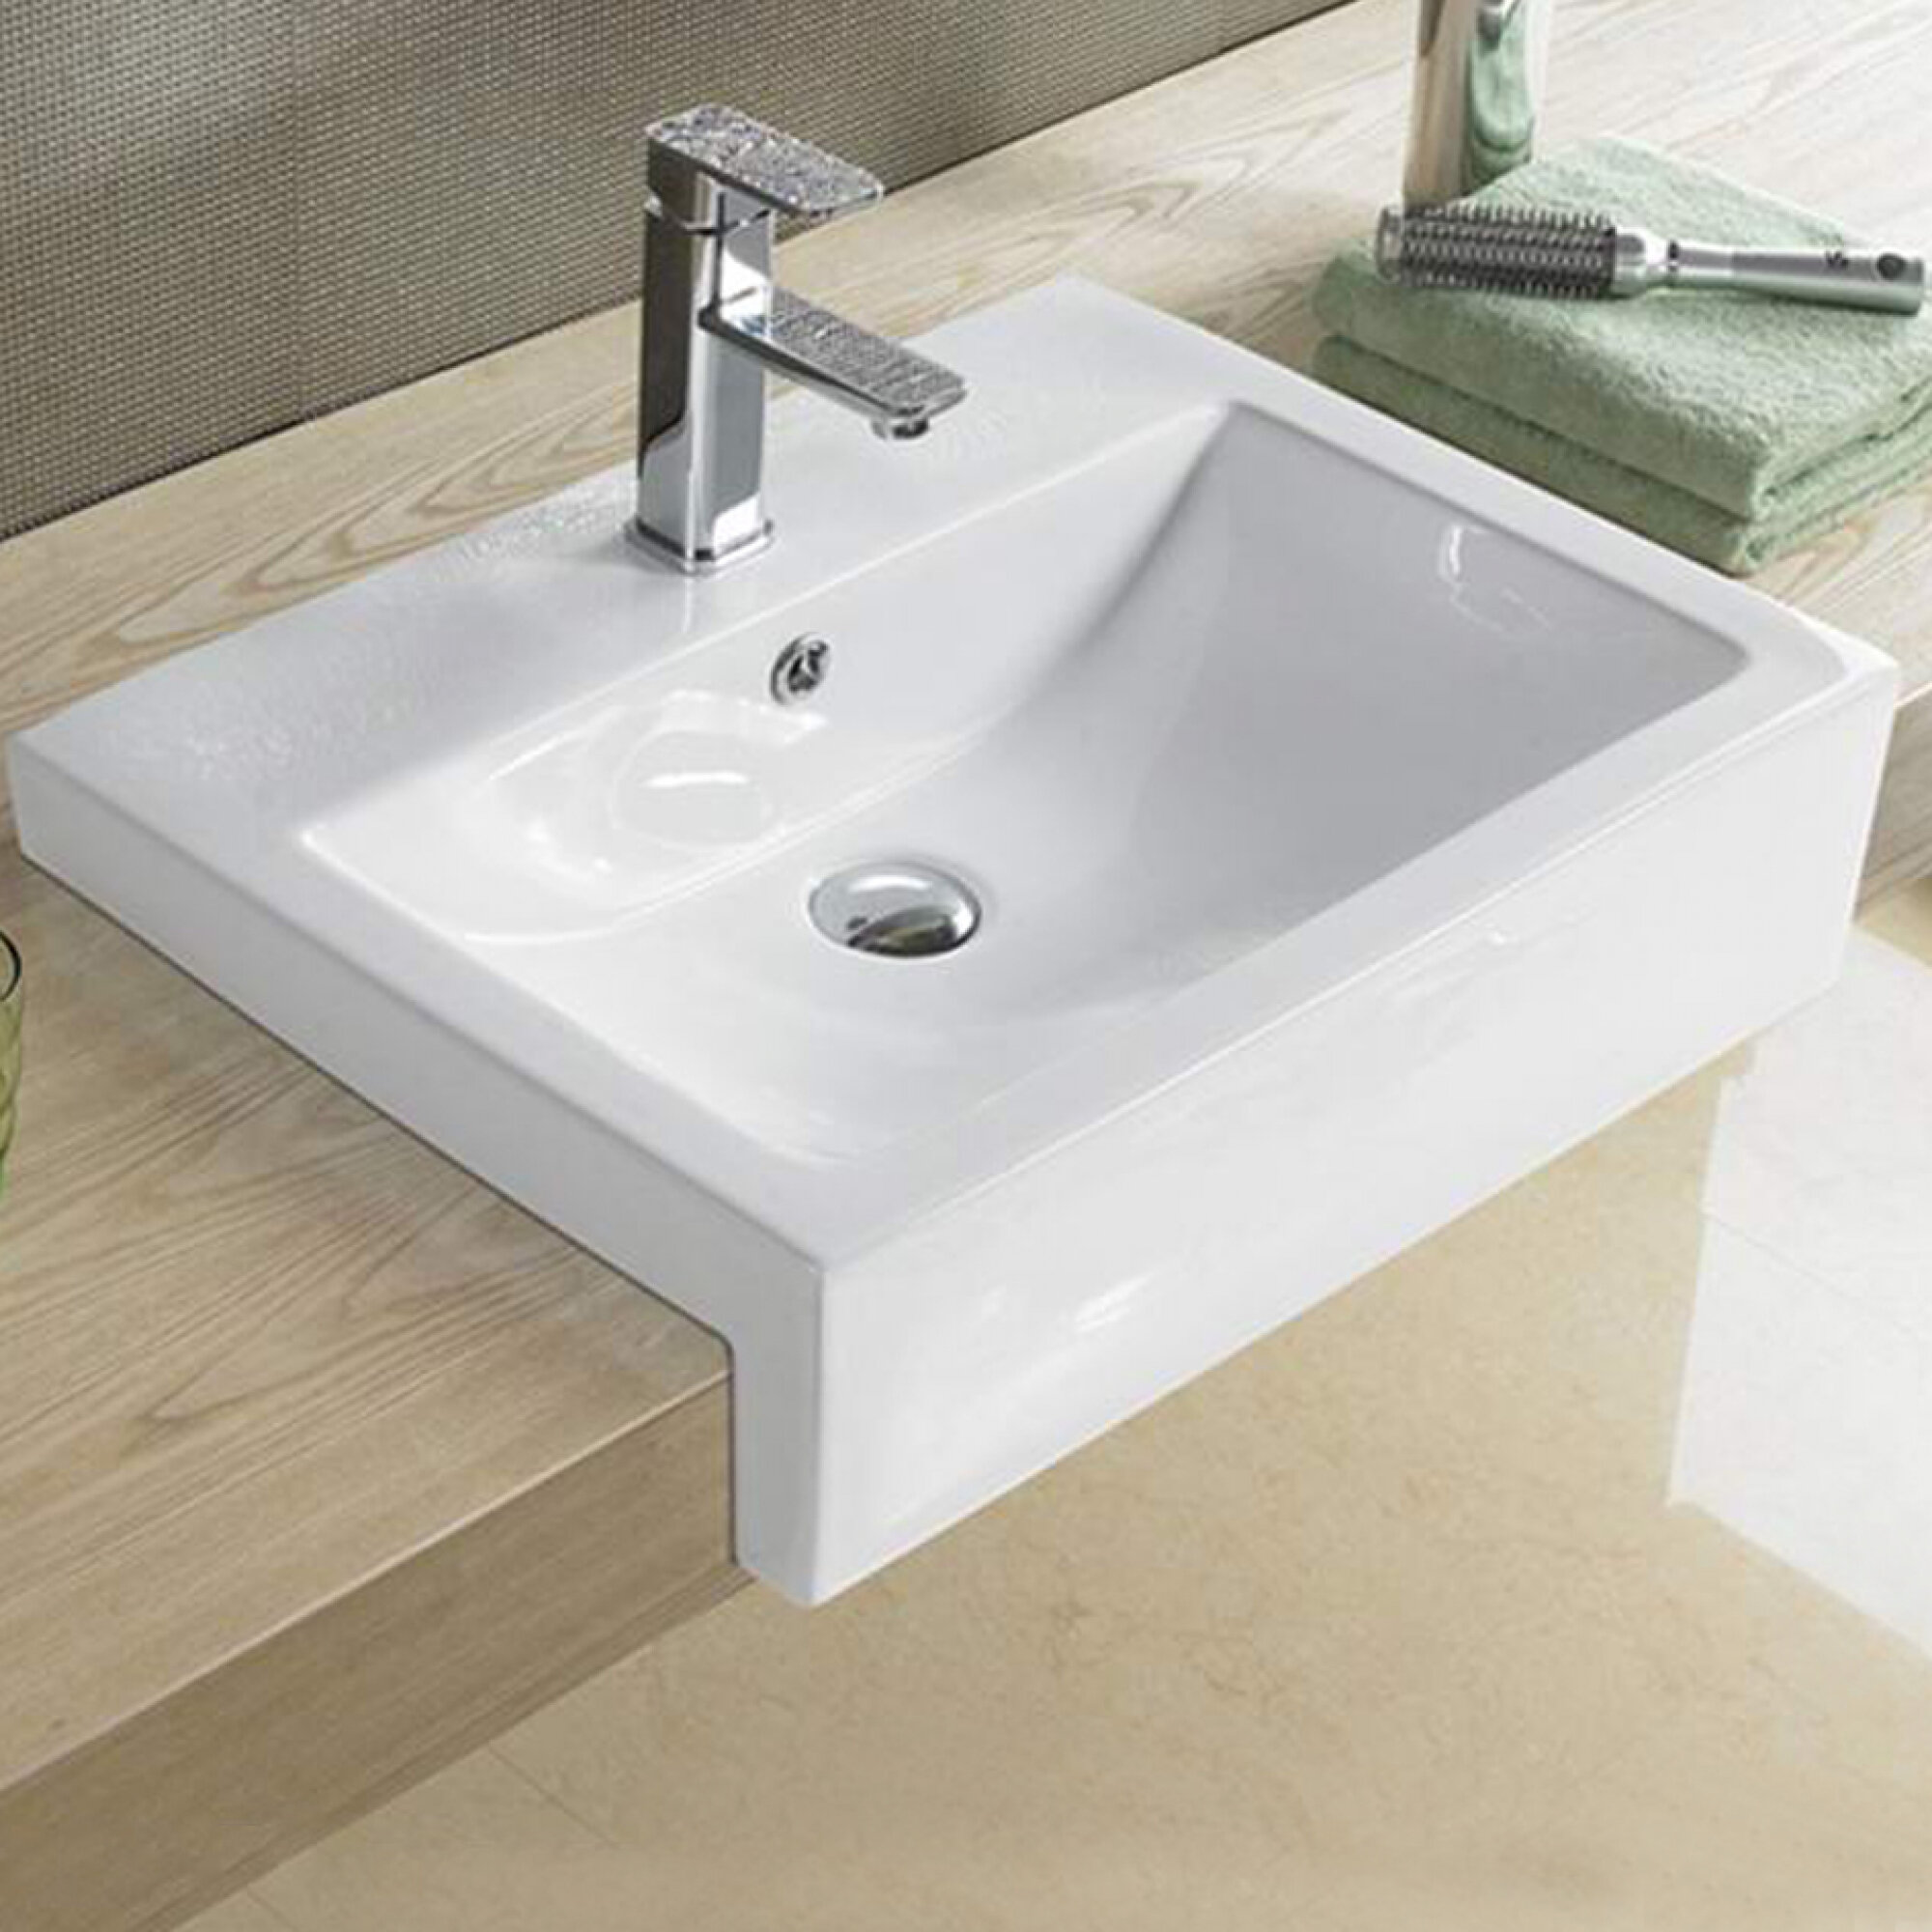 American Imaginations Above Counter For 1 Hole Center Drilling Ceramic Rectangular Vessel Bathroom Sink With Overflow Wayfair